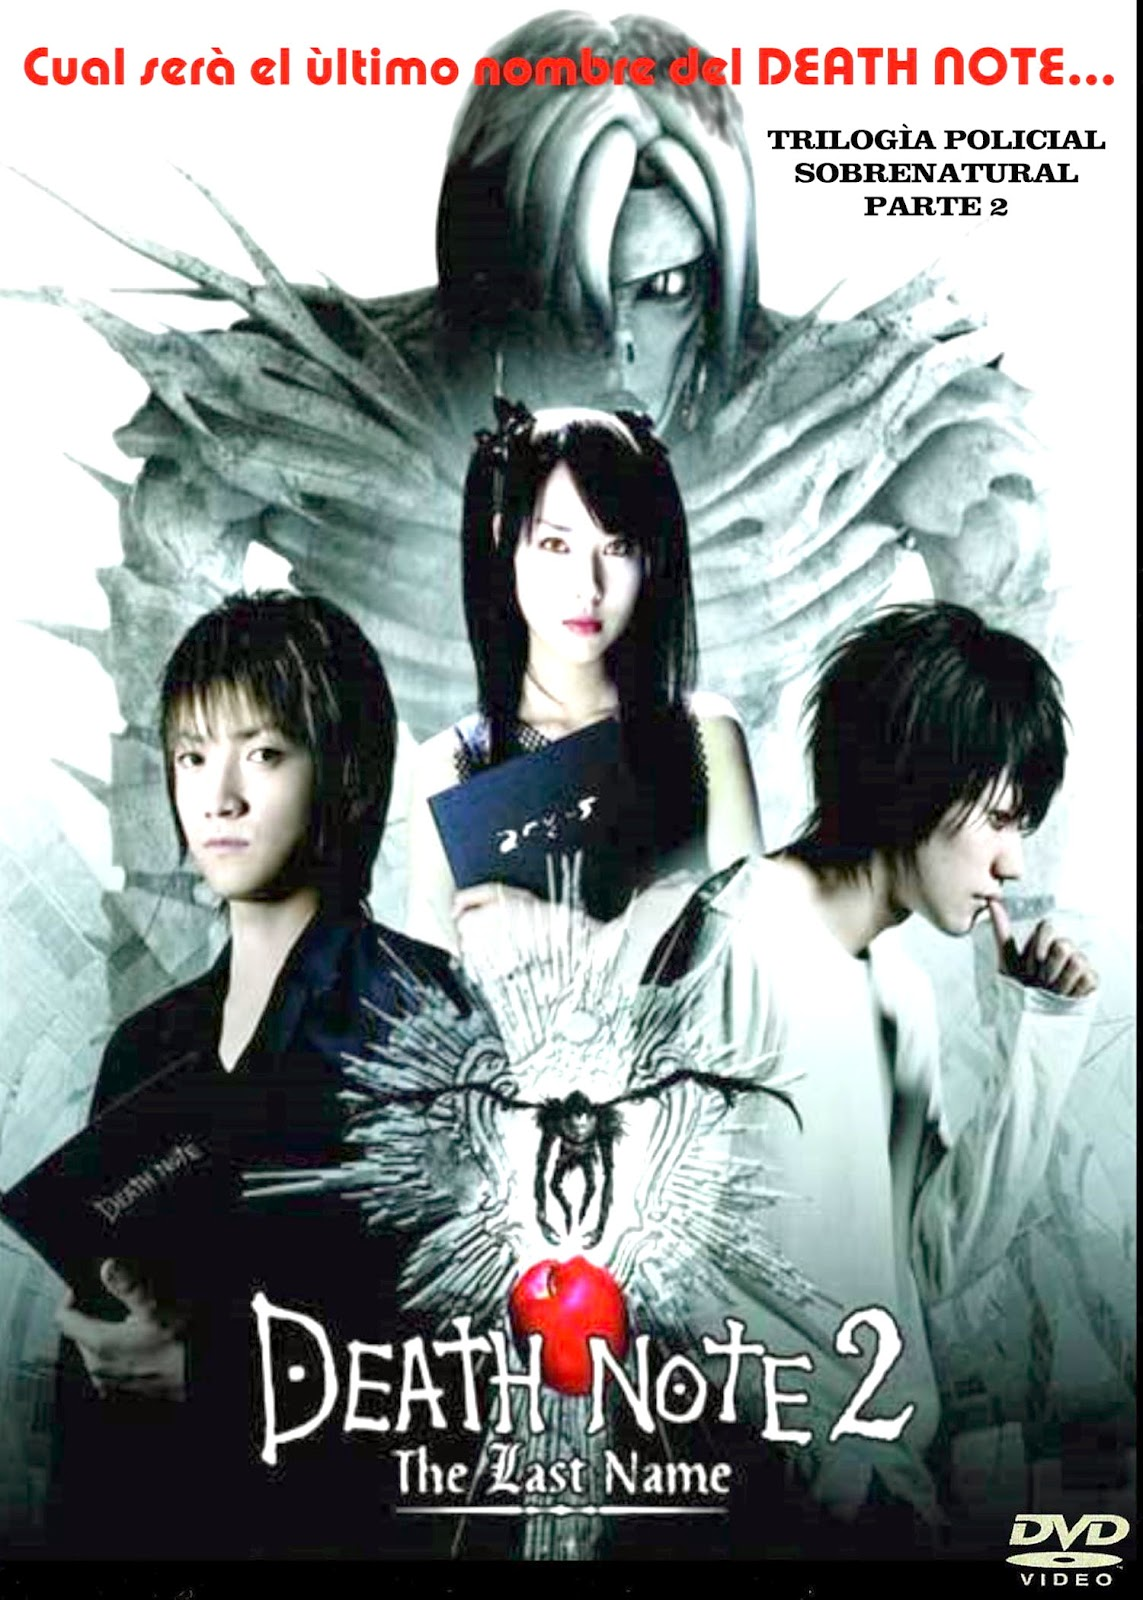 Death Note 2 (The Last Name) | cine sinopsis y peliculas ...